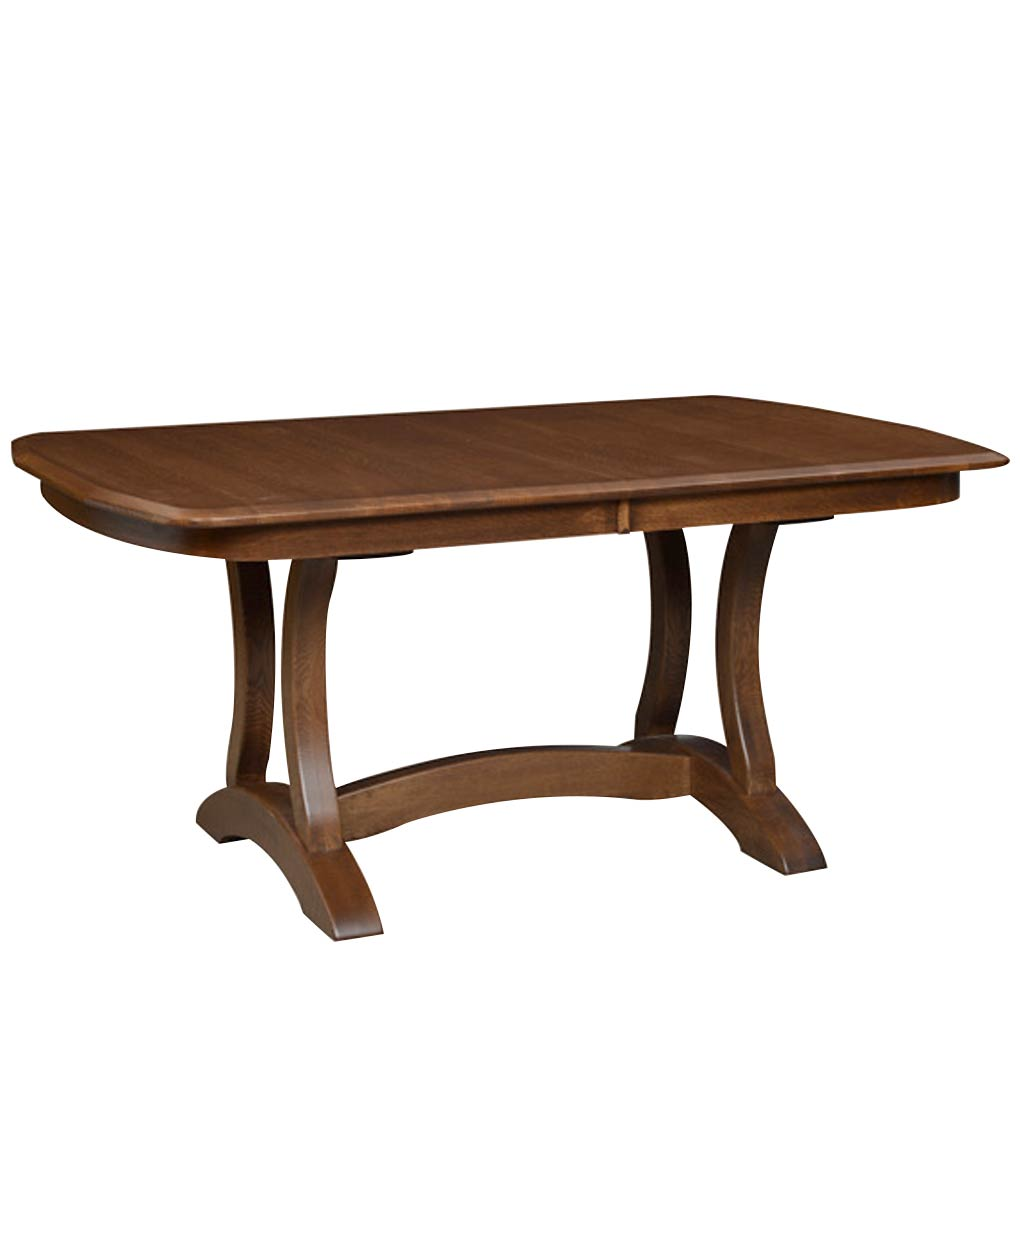 Richfield double pedestal table amish direct furniture for Pedestal table